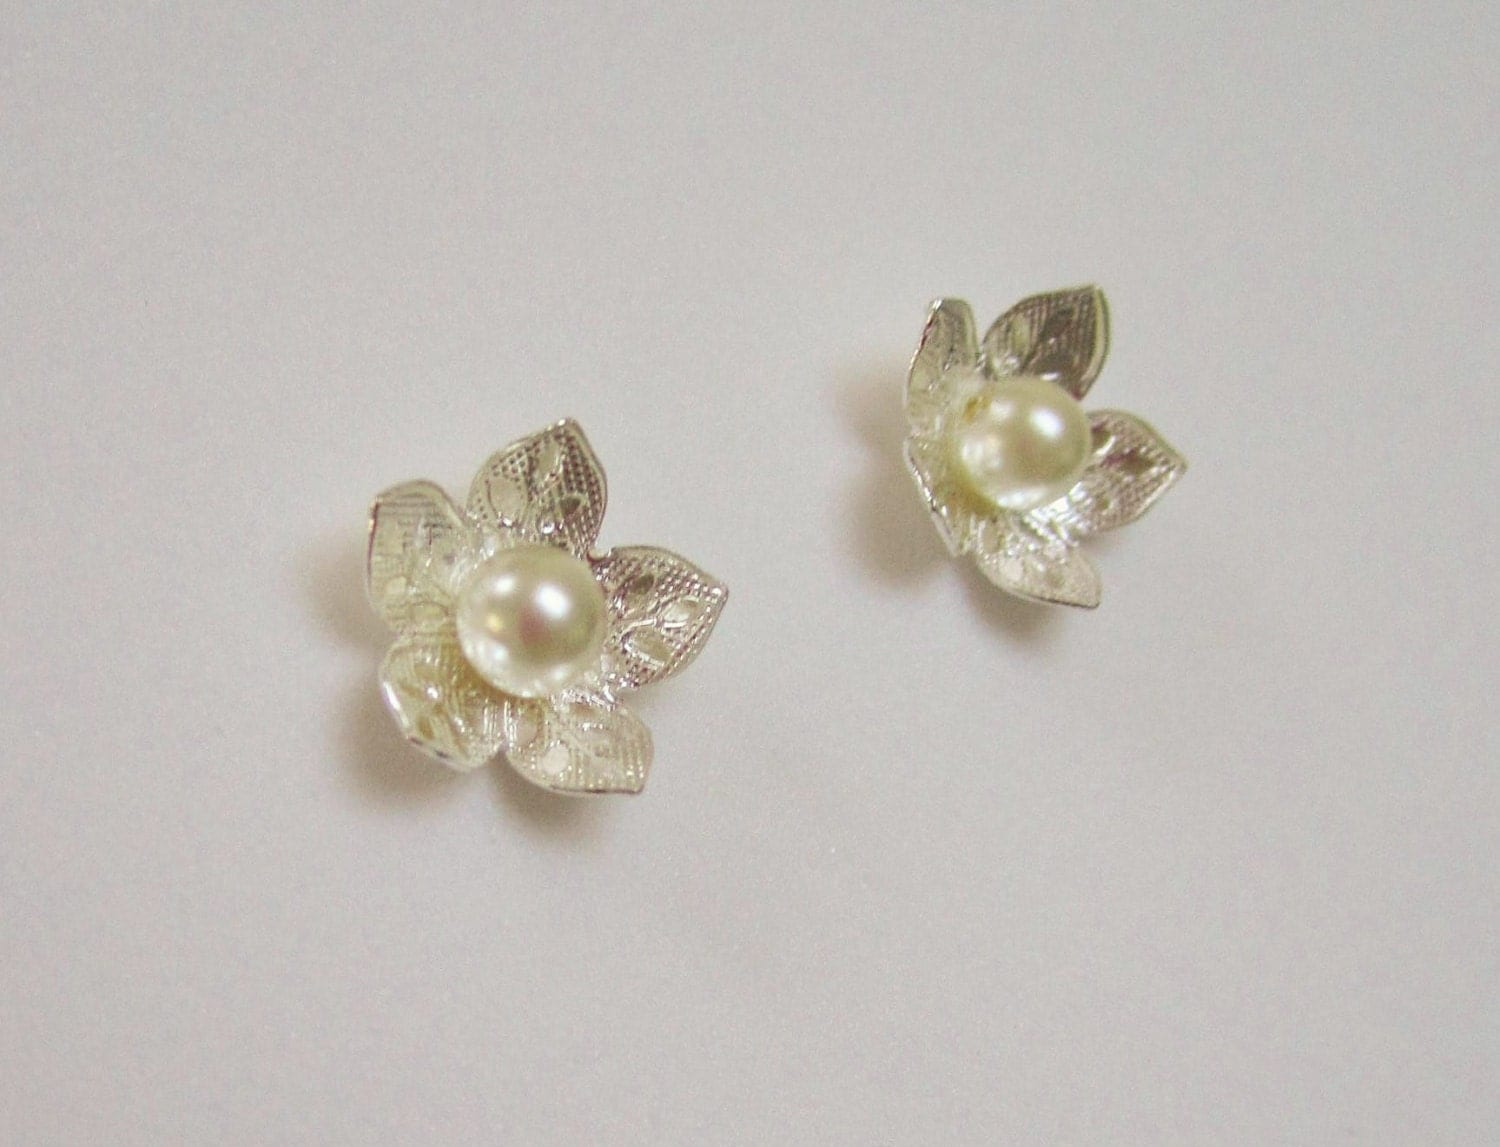 magnetic pearl earrings magnetic earrings studs flower pearl clip on by hickoryhillgems 3928